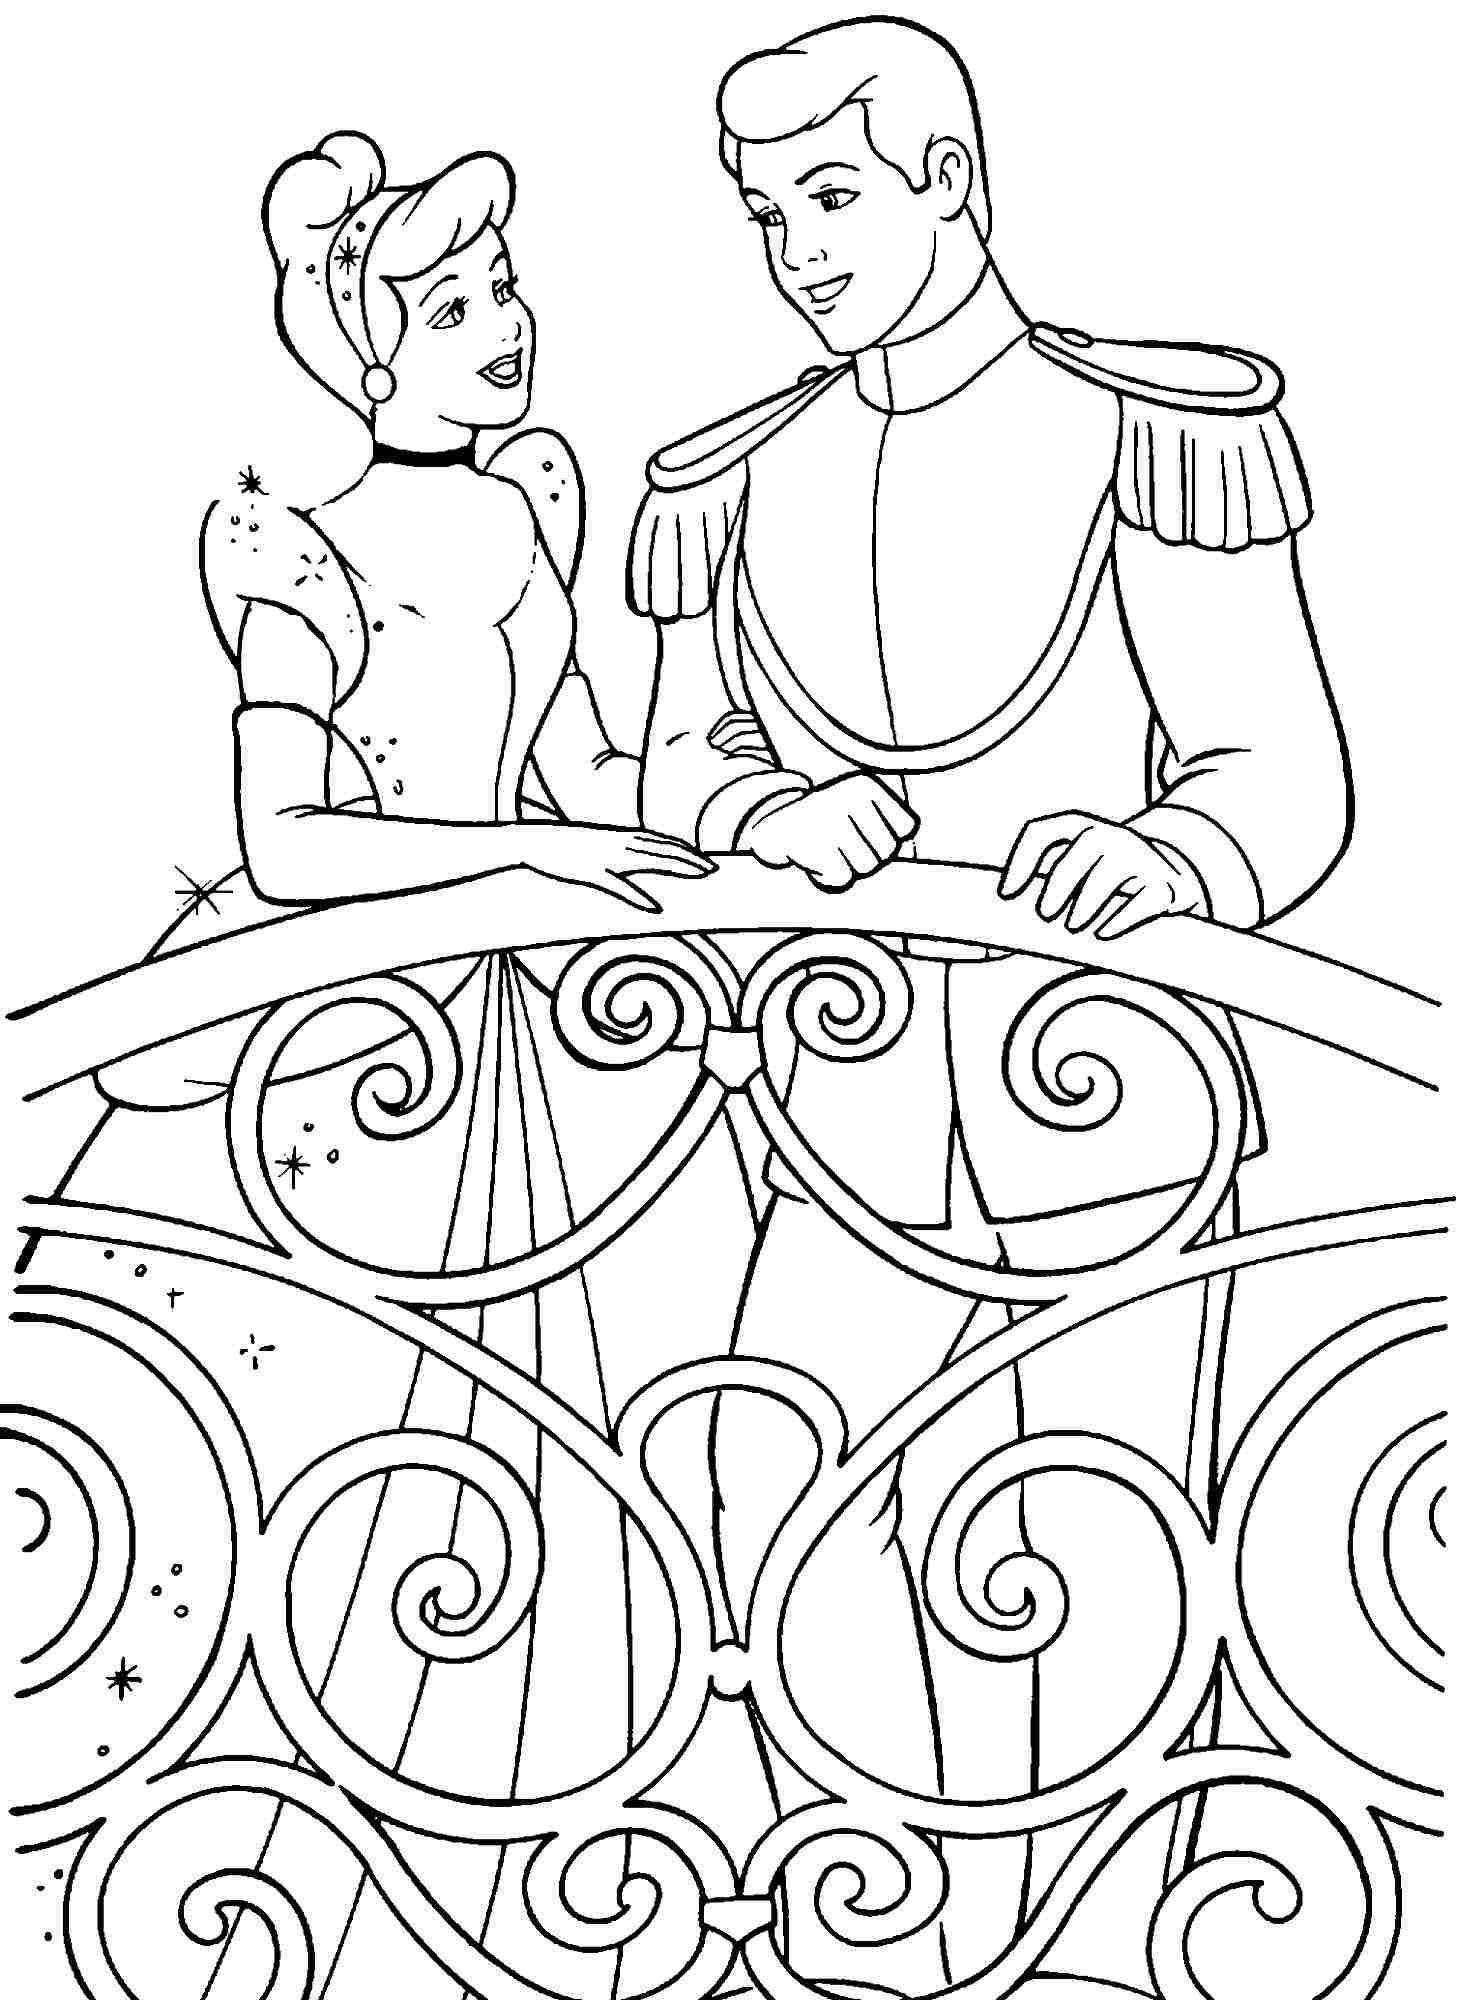 Girls coloring pages free | Colorings | Pinterest